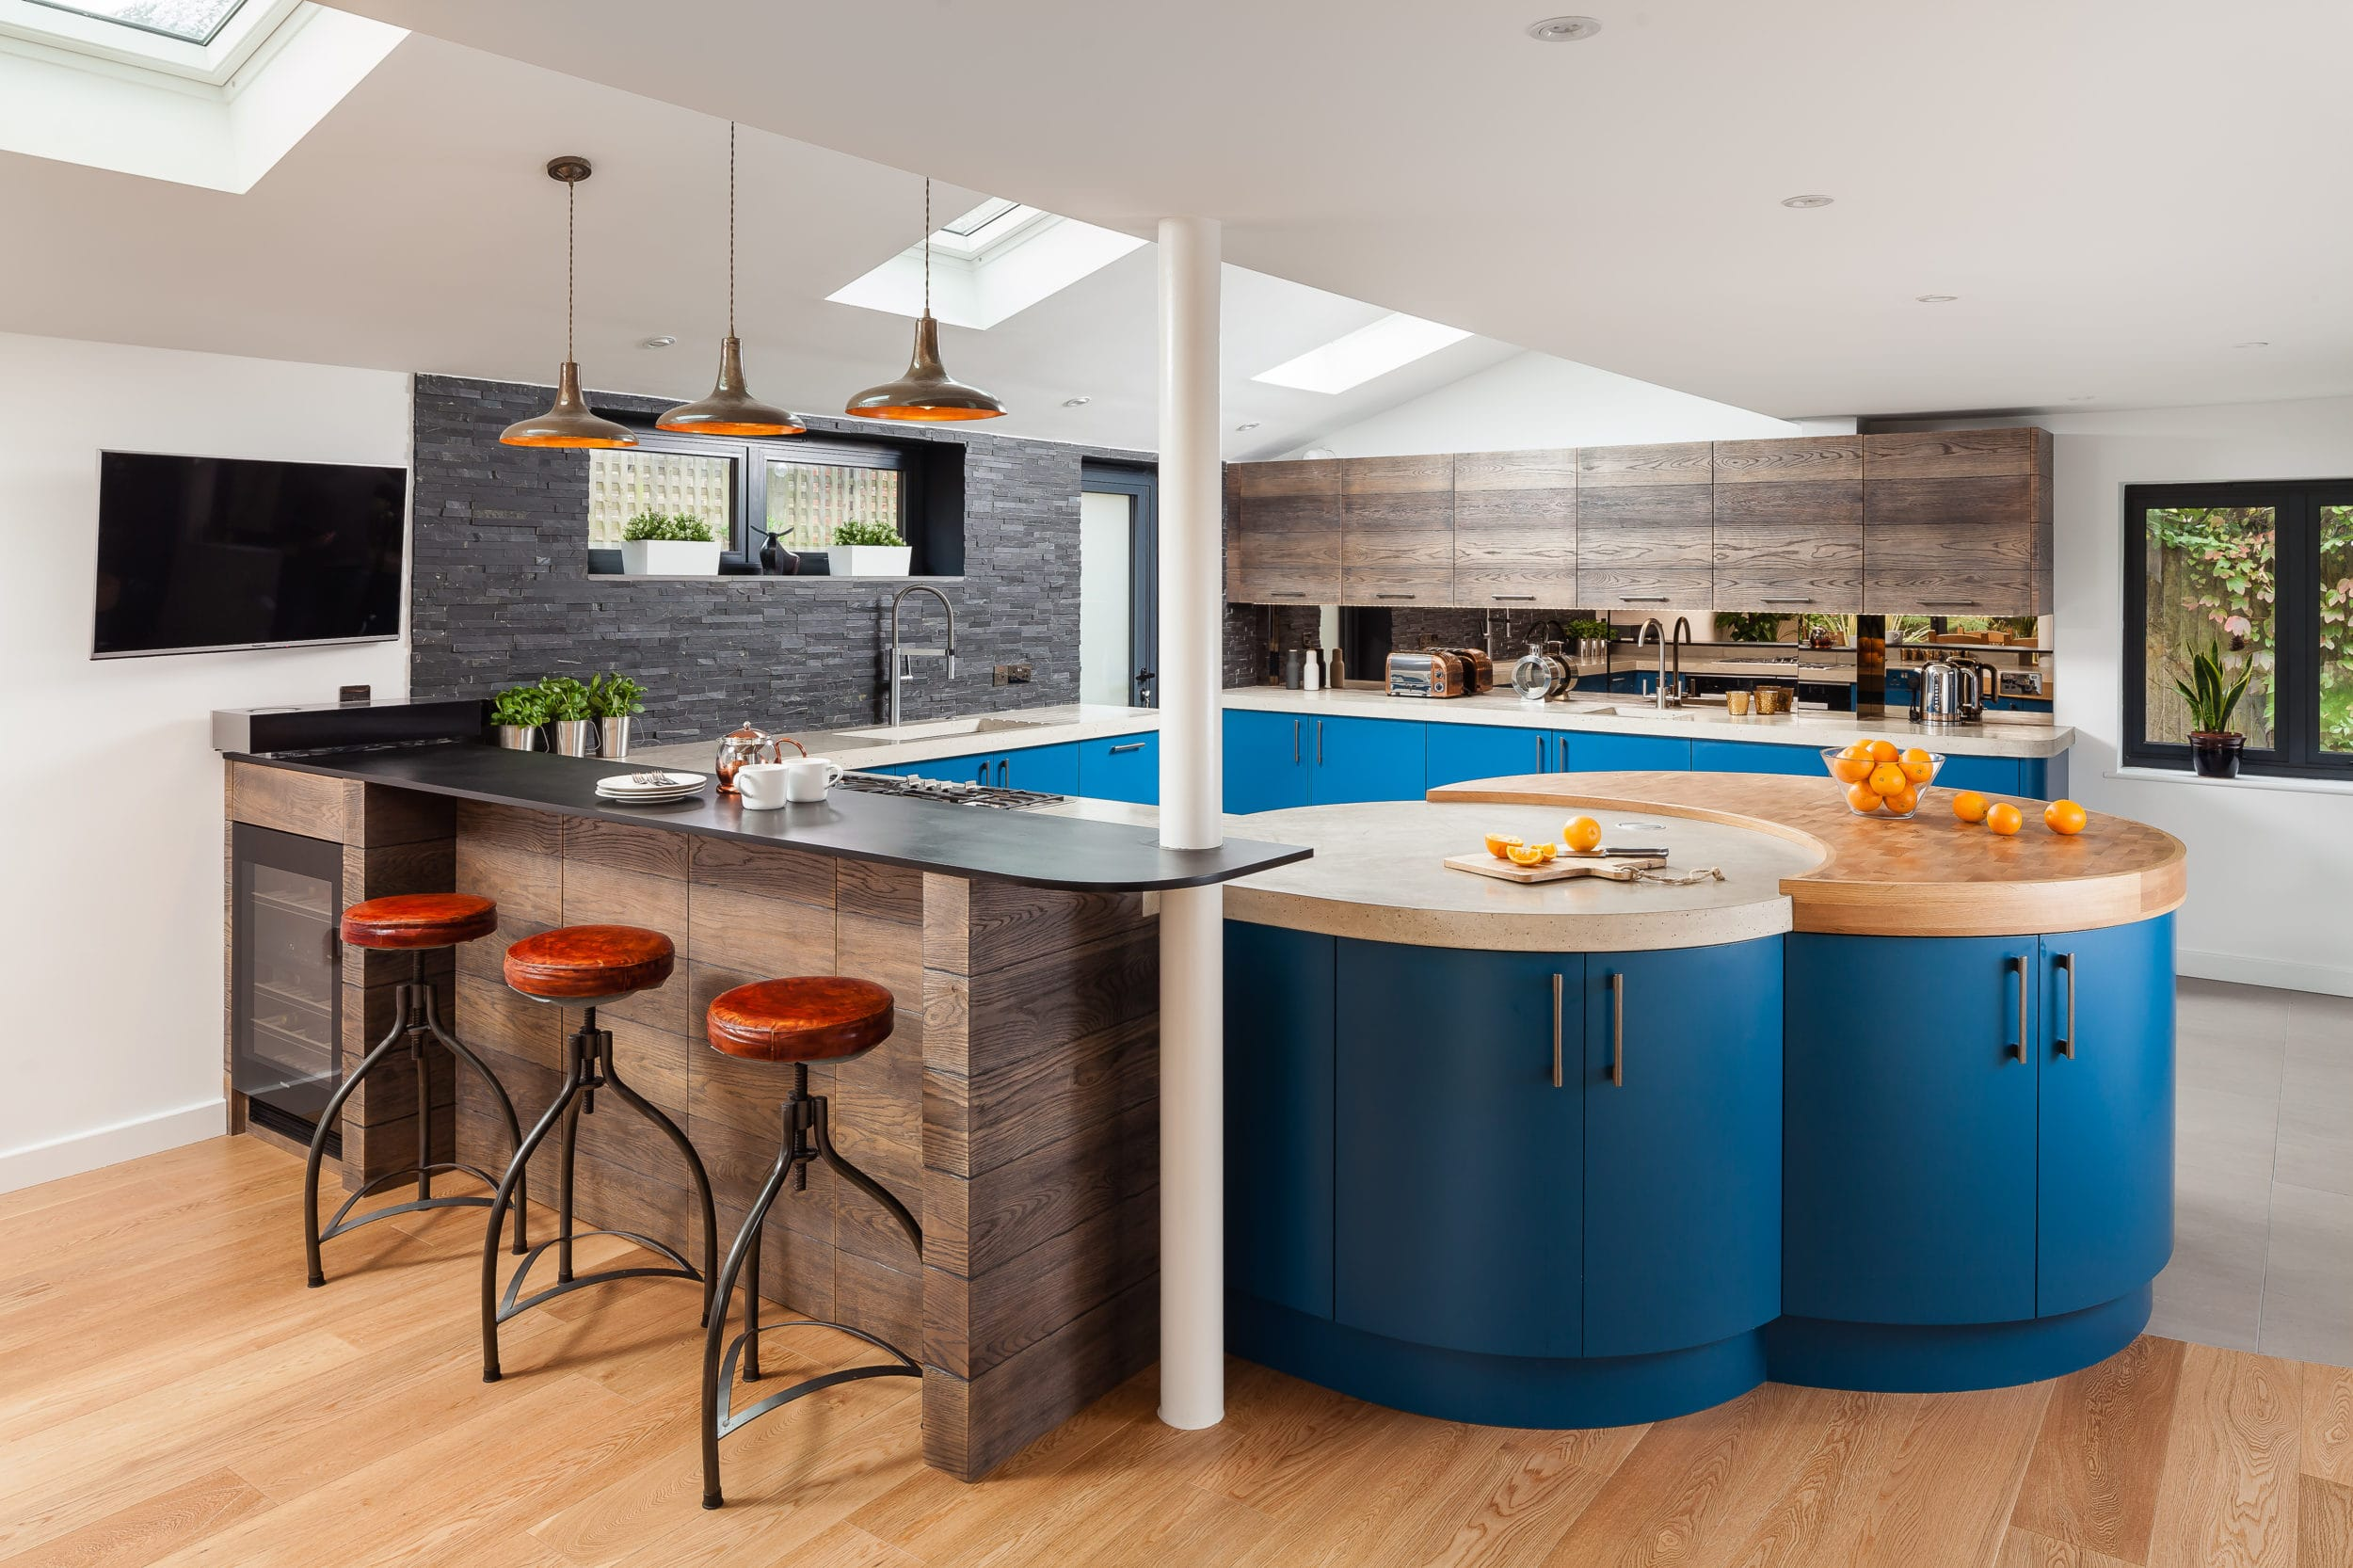 Kitchen Design Trends In 2018 Jones Britain Kitchen Design Trends For 2018